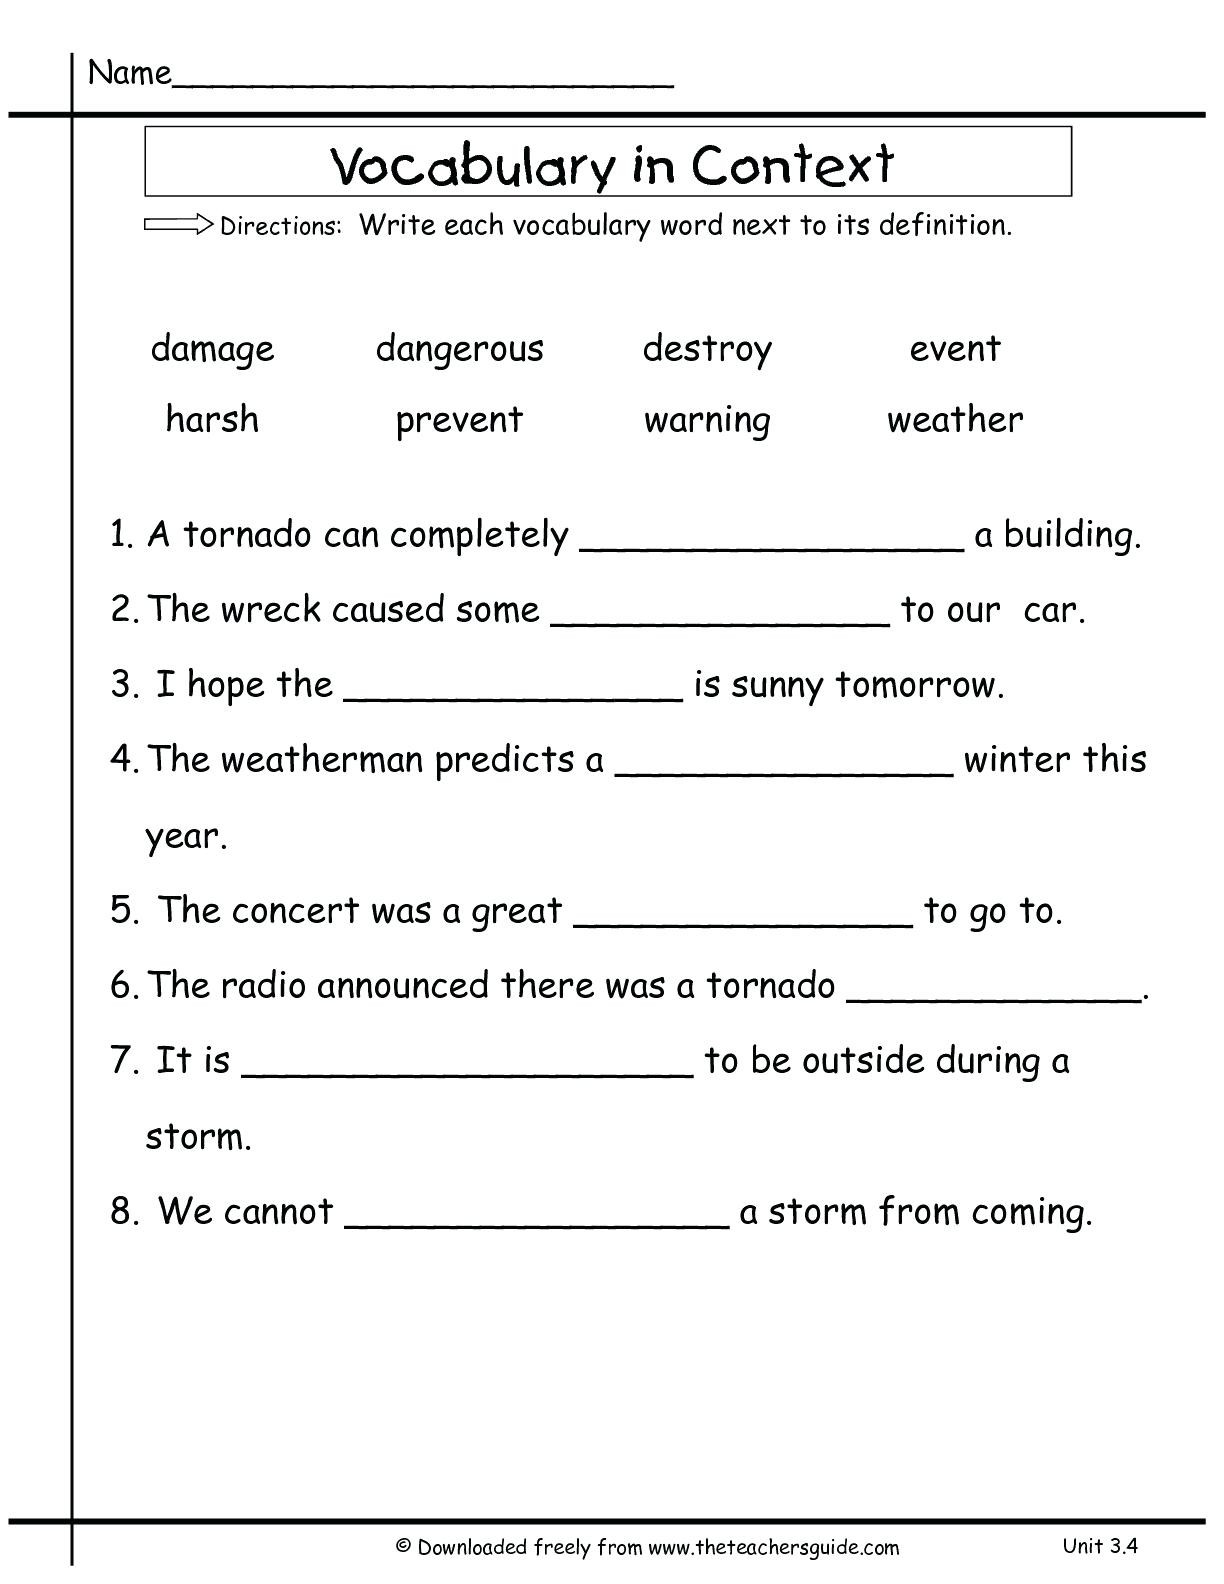 Subject Worksheets 3rd Grade 3rd Grade Vocabulary Worksheets for Educations Free Math